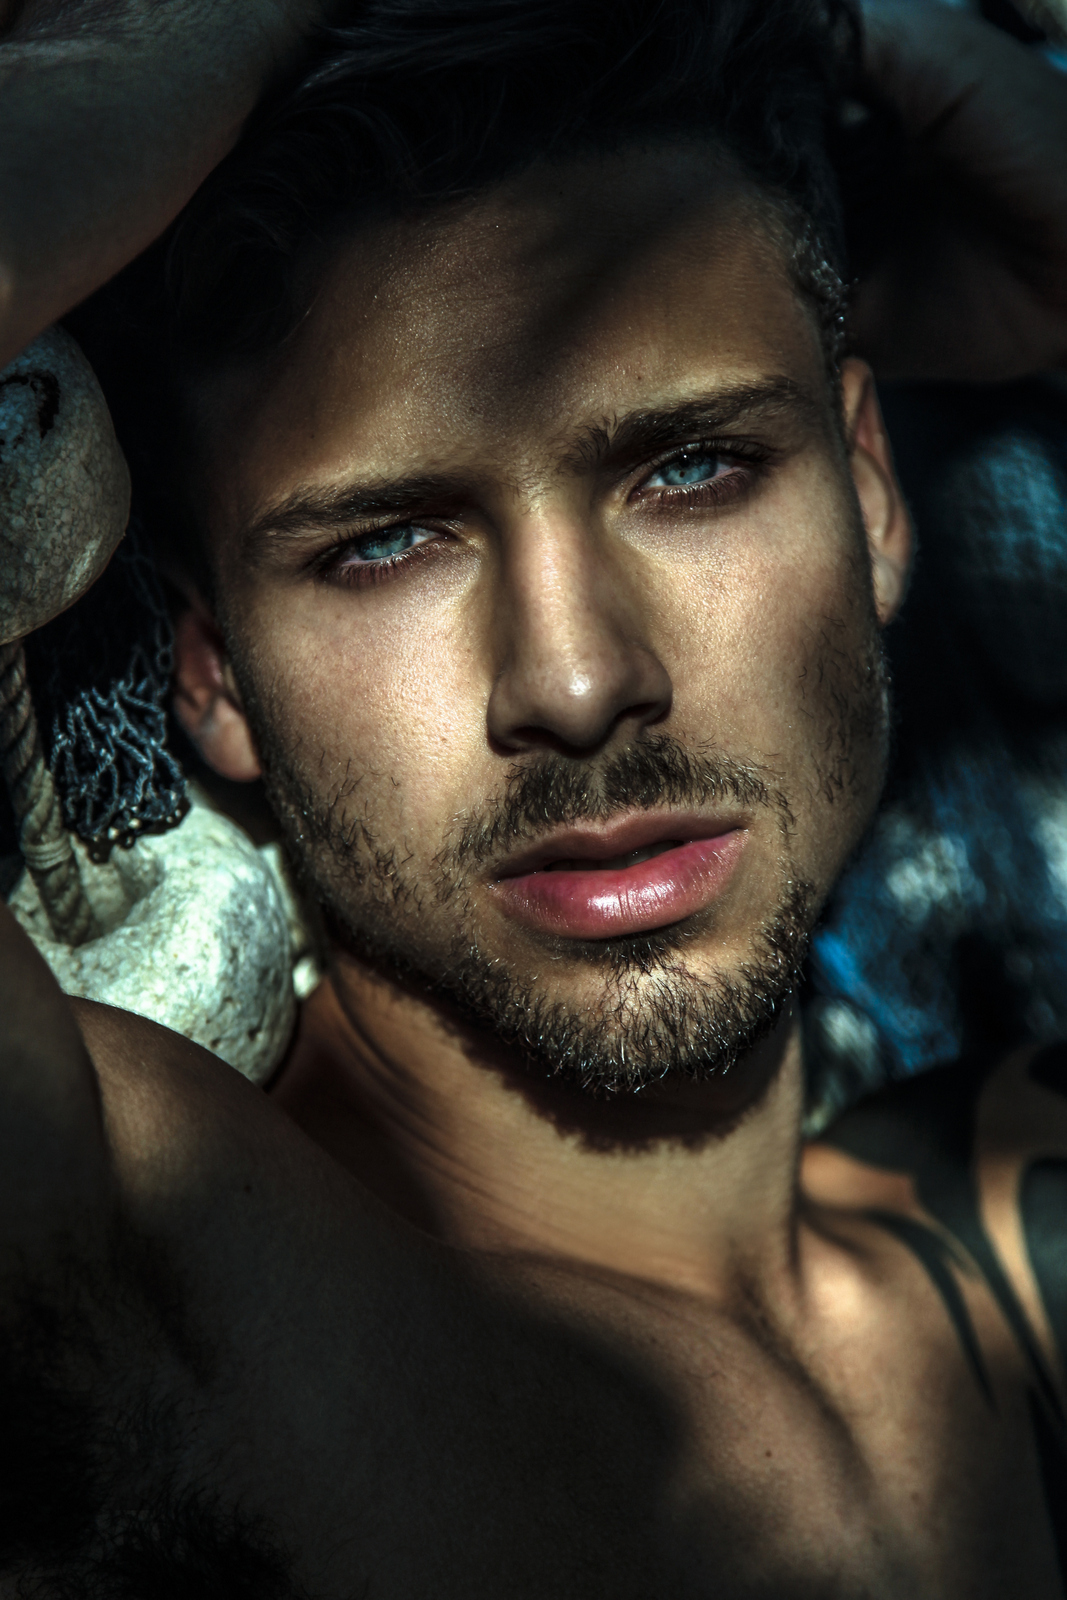 Lucas Hill by Fabio Pamplona